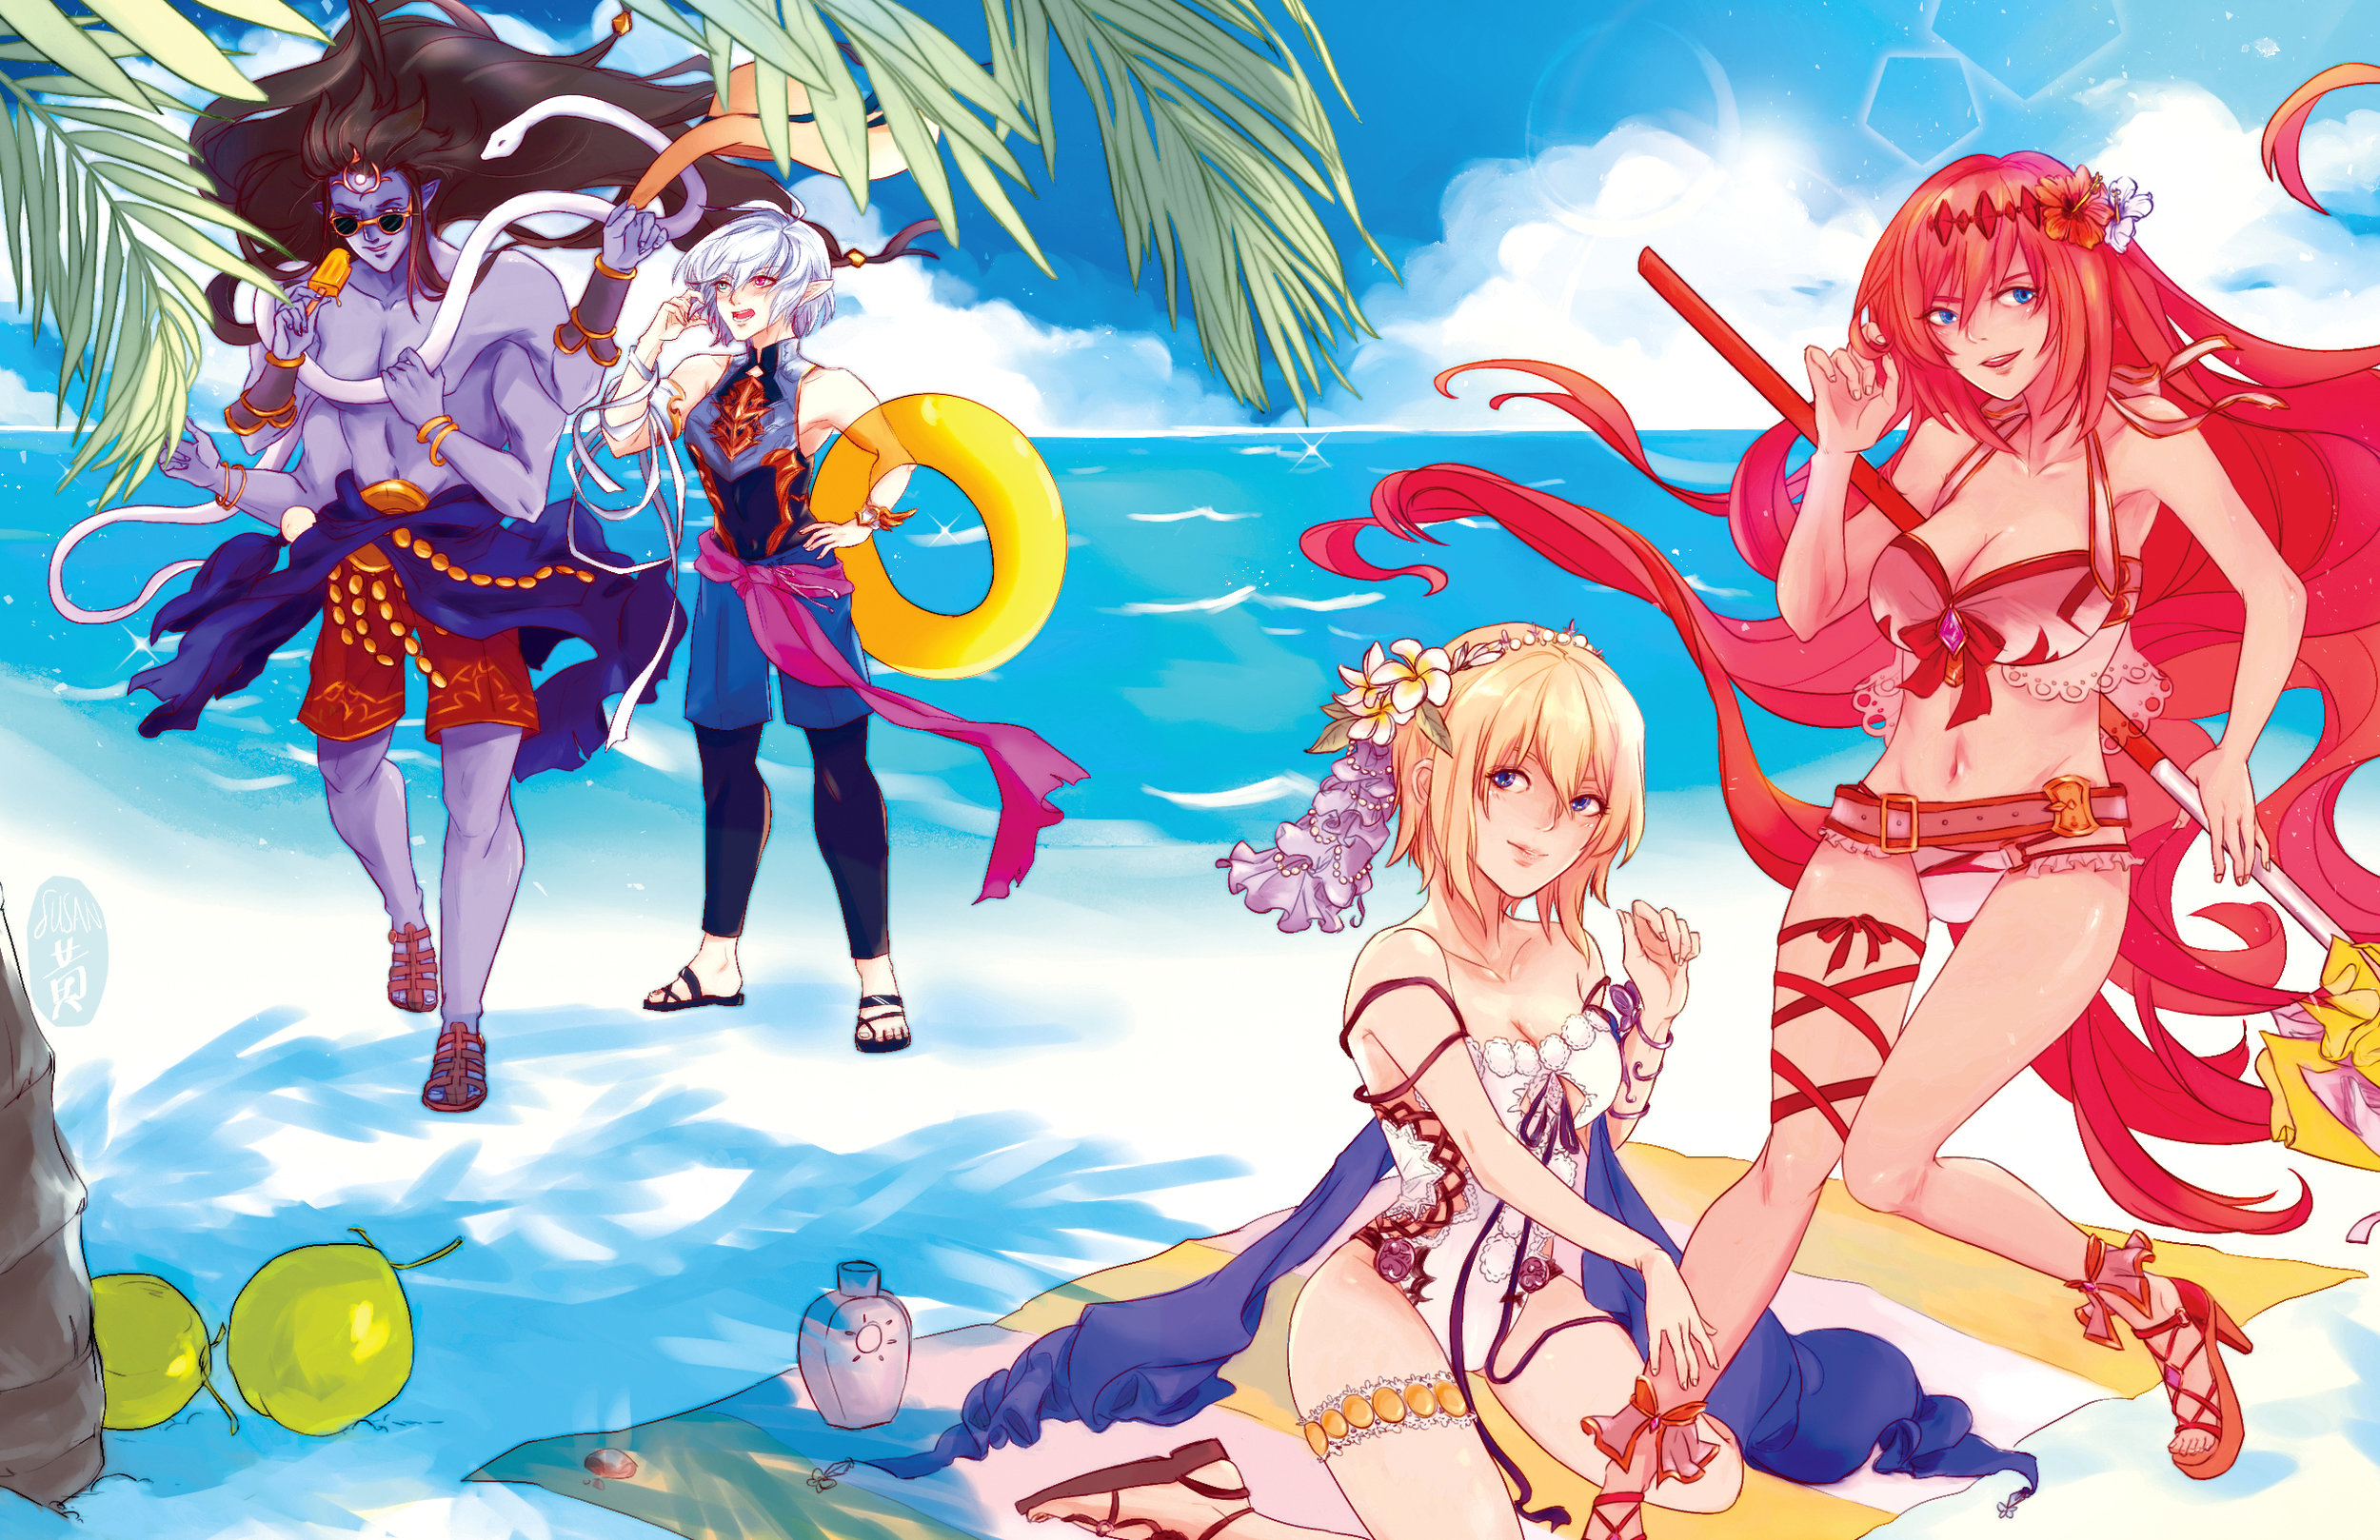 Illustration and original outfit designs for the   Gbf Summer Zine   : a  fun in the sun zine dedicated to GranBlue Fantasy's summer outfit designs.  process gif:  https://twitter.com/aegisunmerge/status/1100250185899360257    bonus design notes for europa and alexiel:  https://twitter.com/aegisunmerge/status/1100252668004655104